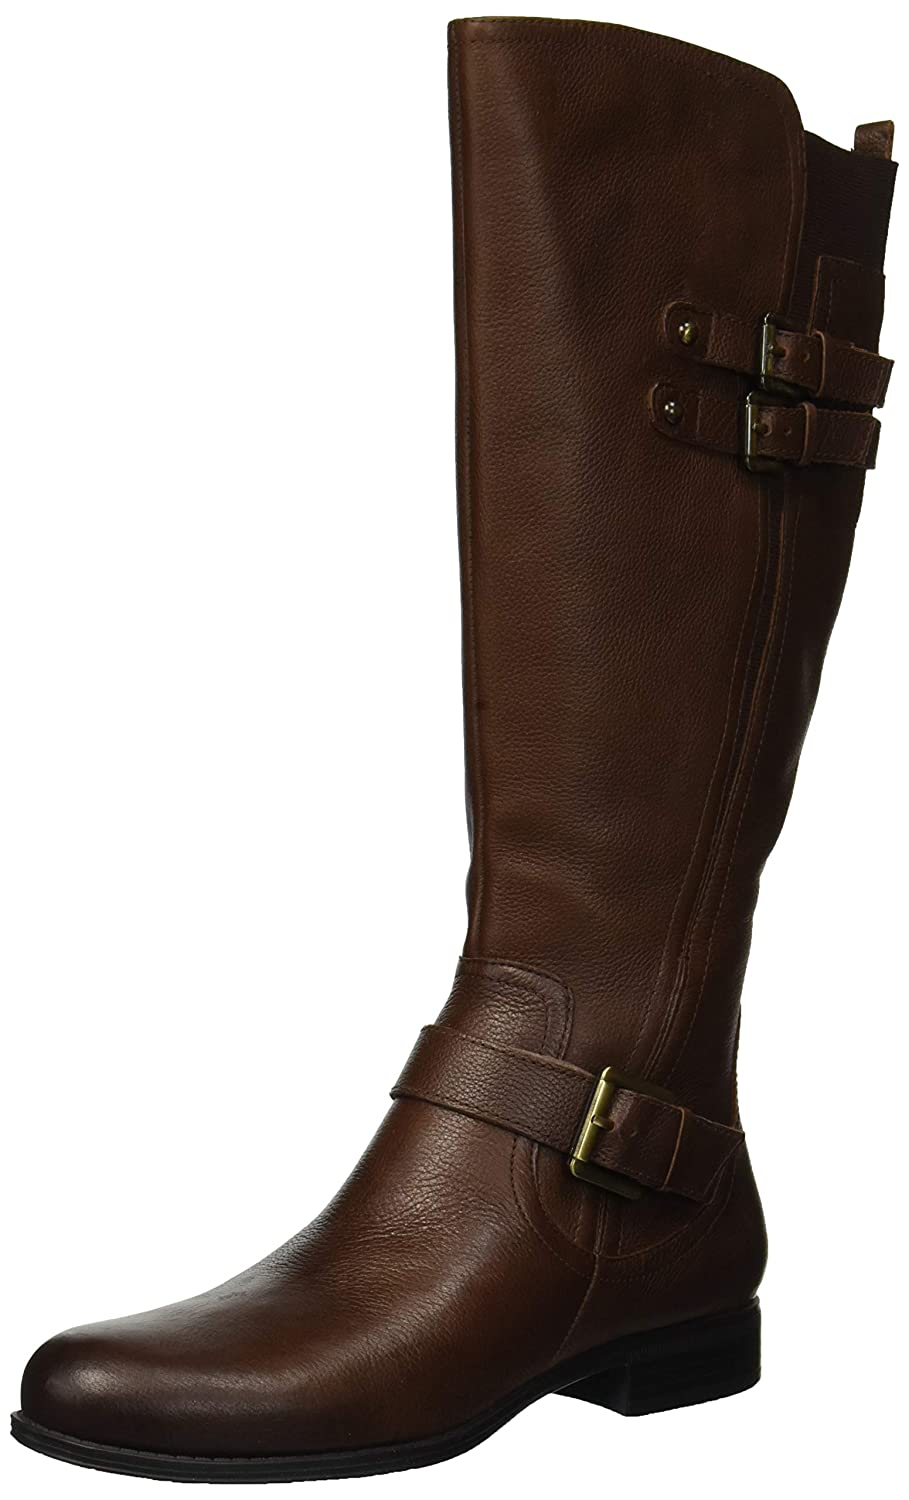 Women's Jessie Knee-High Triple-Buckle Straps Low-Heel Chocolate Real Leather Boots - DeluxeAdultCostumes.com